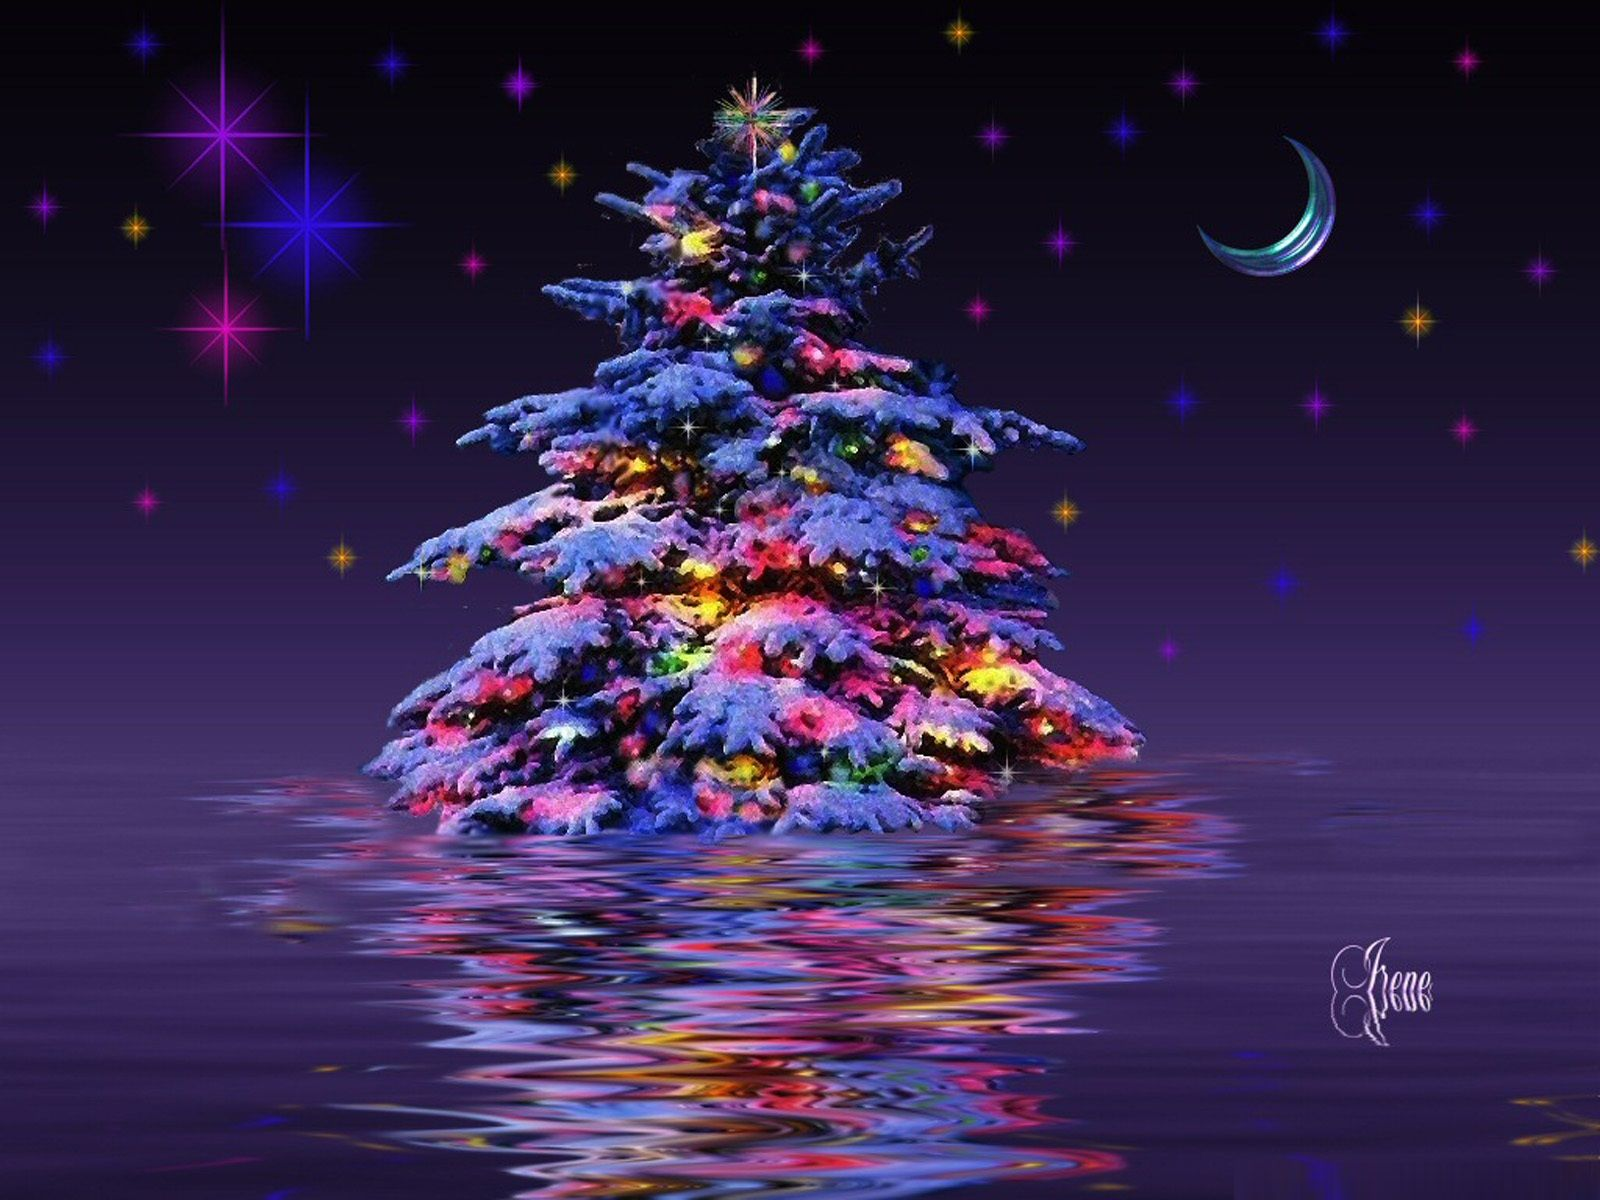 Xmas Pictures Hd Christmas Tree Wallpaper Christmas Tree Pictures Animated Christmas Tree